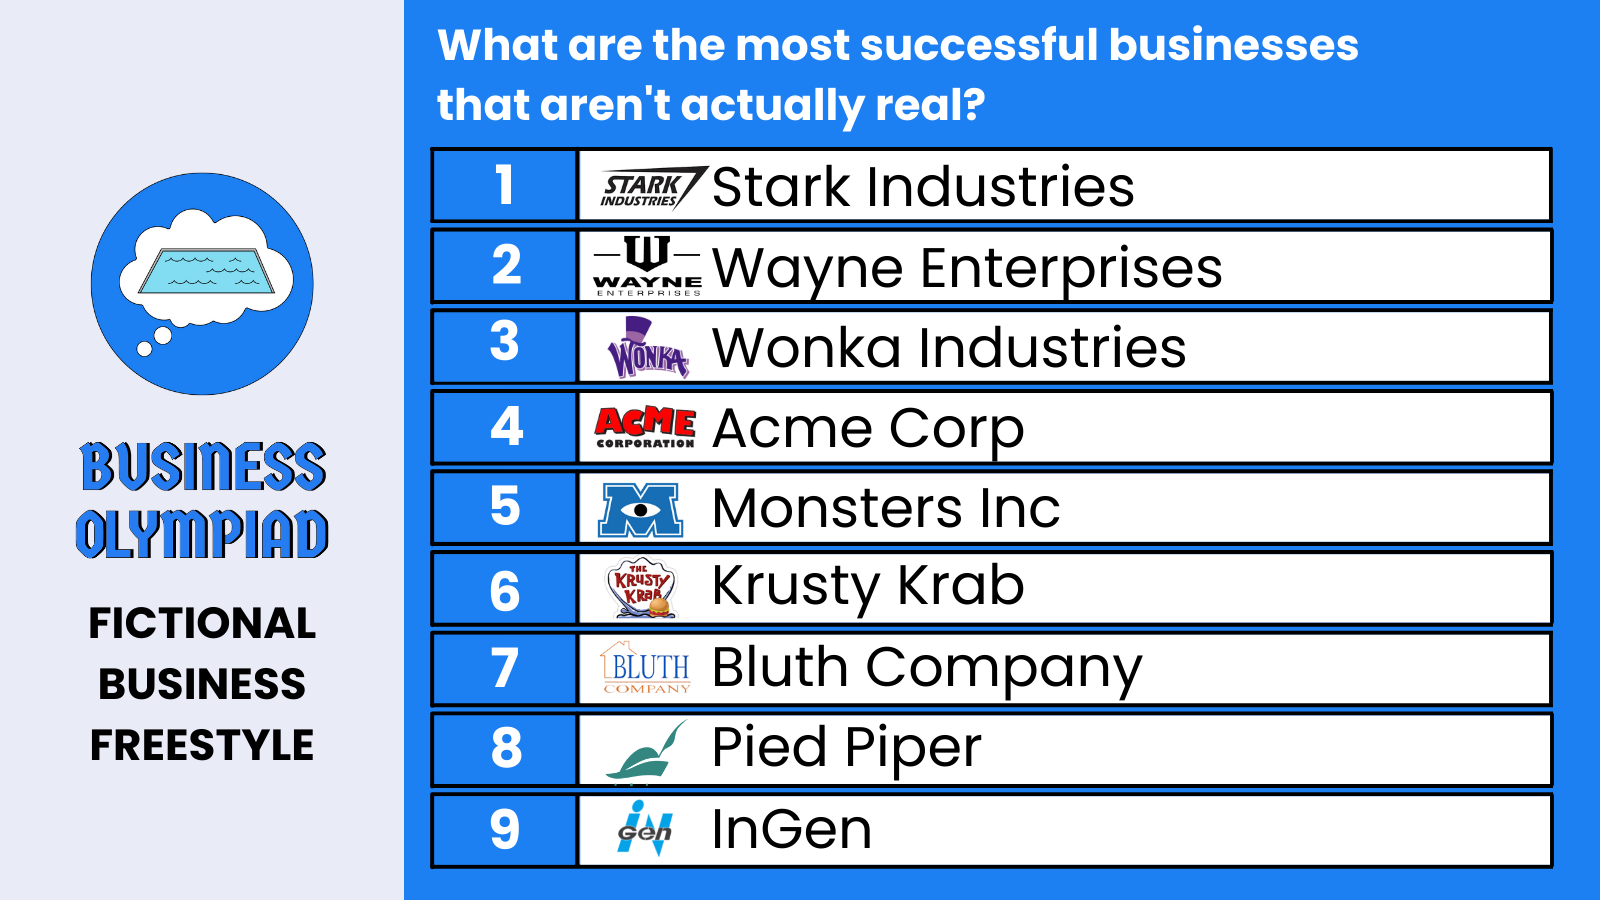 Fictional Business Freestyle leaderboard